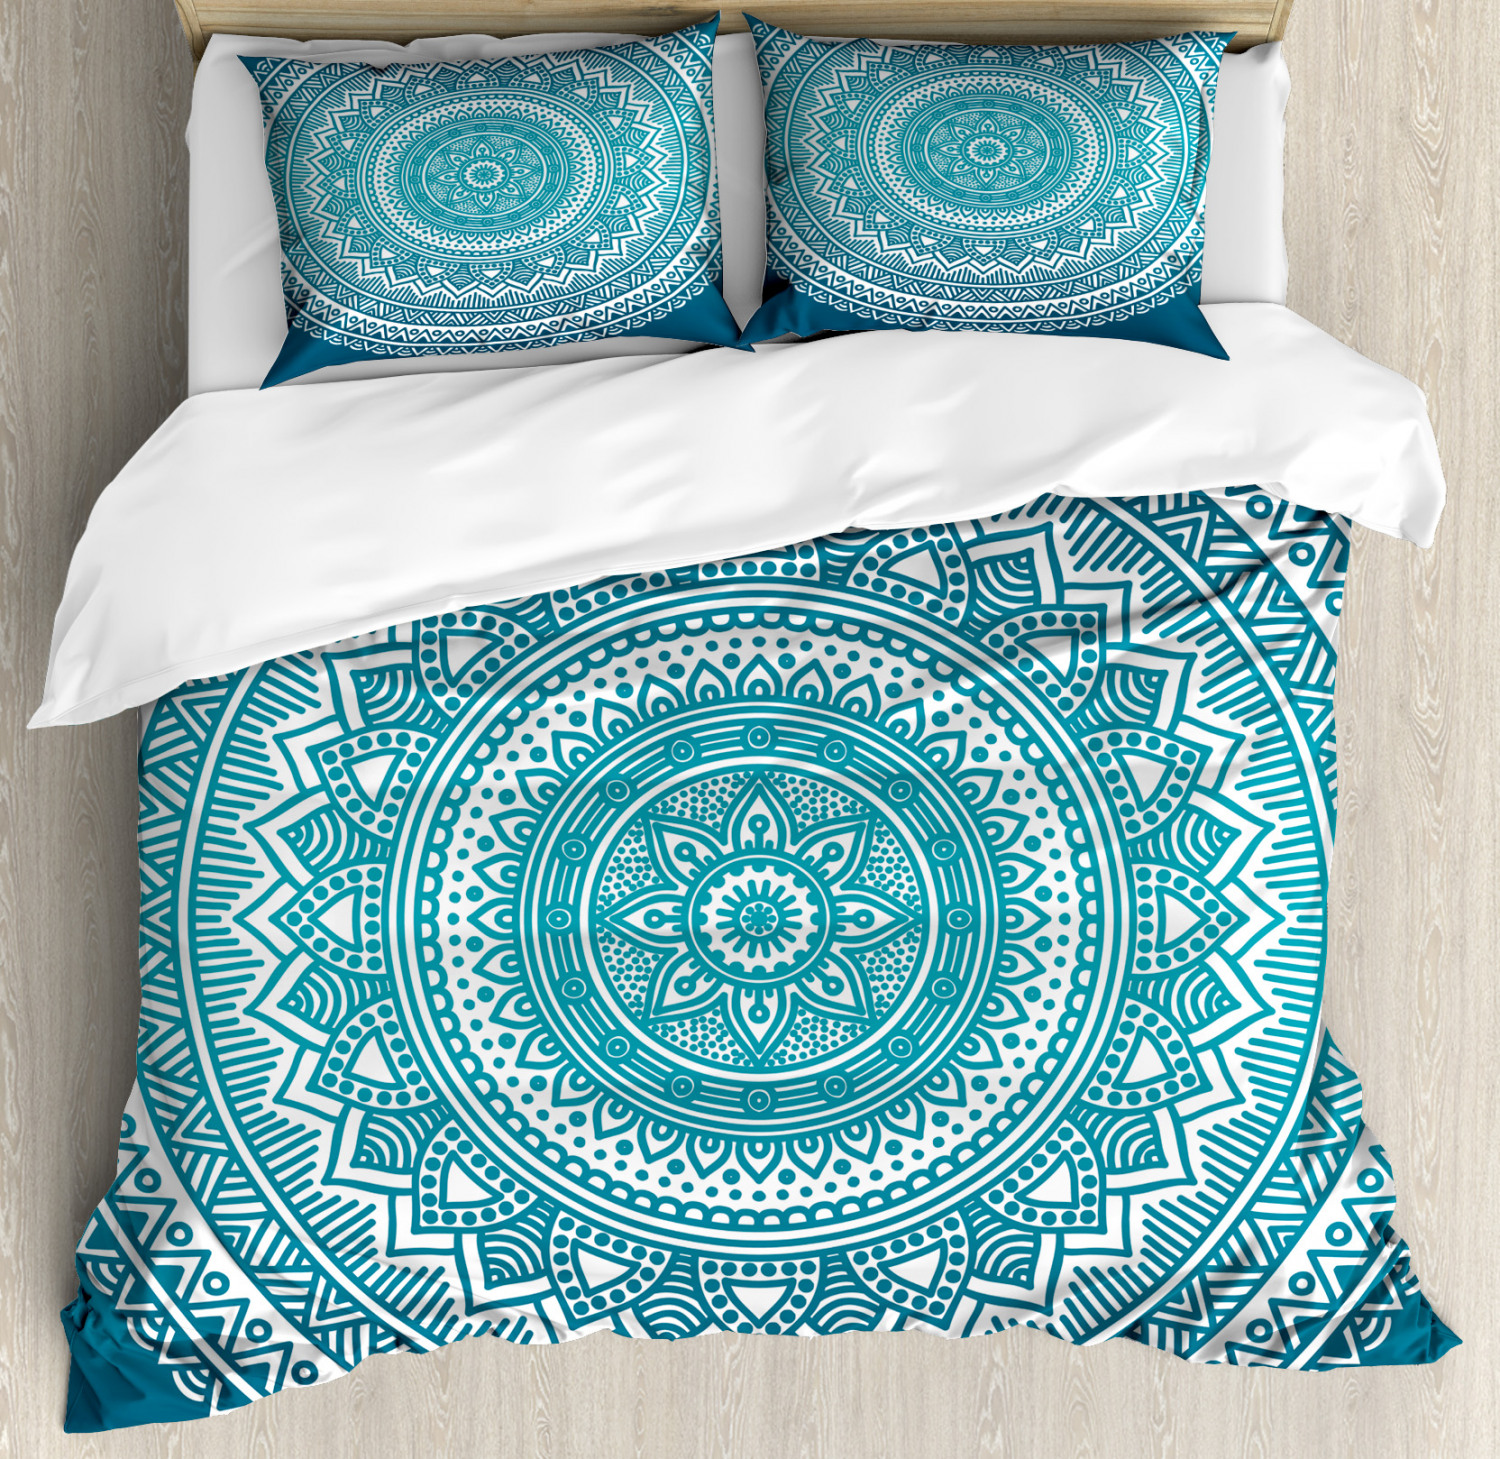 turquoise ombre duvet cover set mandala medallion starry design with flower in middle ethnic ethnic art decorative bedding set with pillow shams